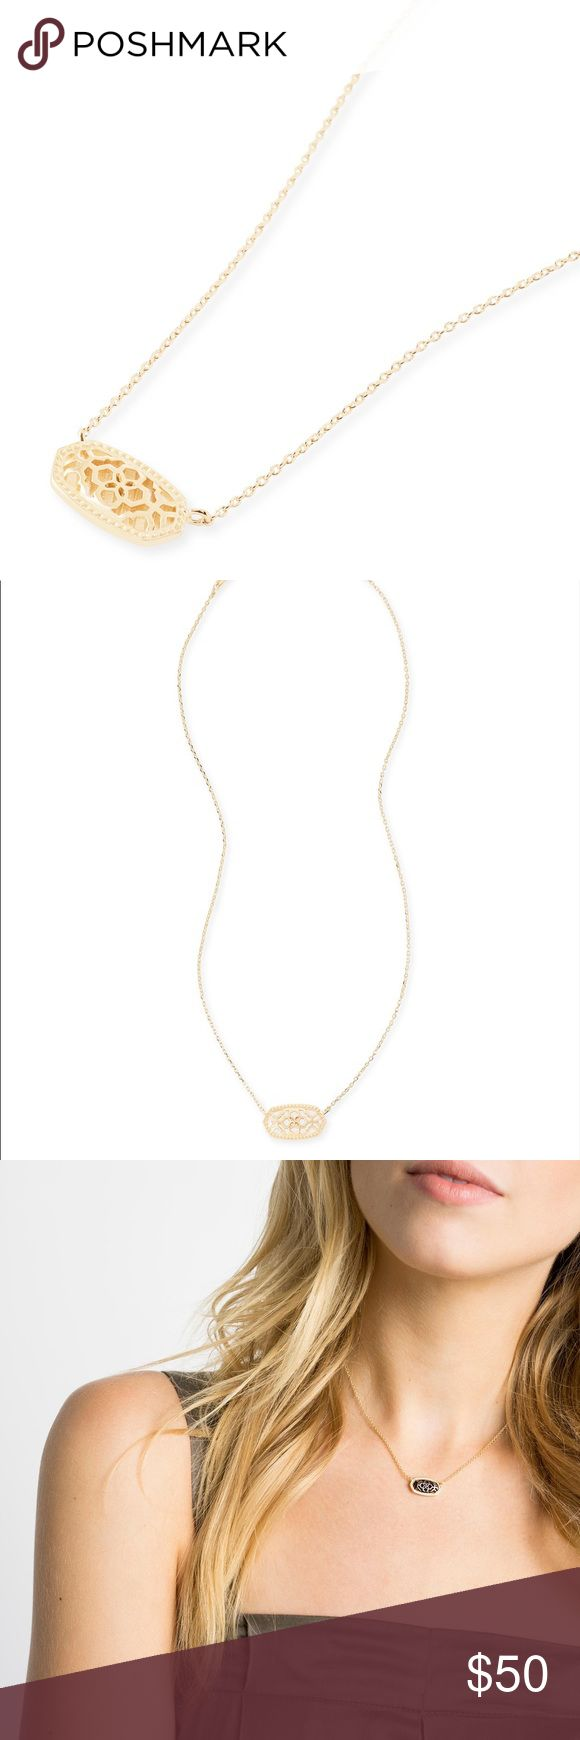 """NWT!! Kendra Scott gold Elisa filigree necklace!! Beautiful 'Elisa' necklace from Kendra Scott!! Brand new with tags!! 14K gold plated over brass, with a lobster clasp closure. The pendant is 0.63""""L x 0.38""""W, on a 15"""" chain with a 2"""" extender. This necklace matches everything!! It can be worn alone or layered for a unique look. Kendra Scott dust bag and necklace card will be included. The 3rd picture is just to show what this style of necklace looks like while wearing. Kendra Scott Jewelry…"""